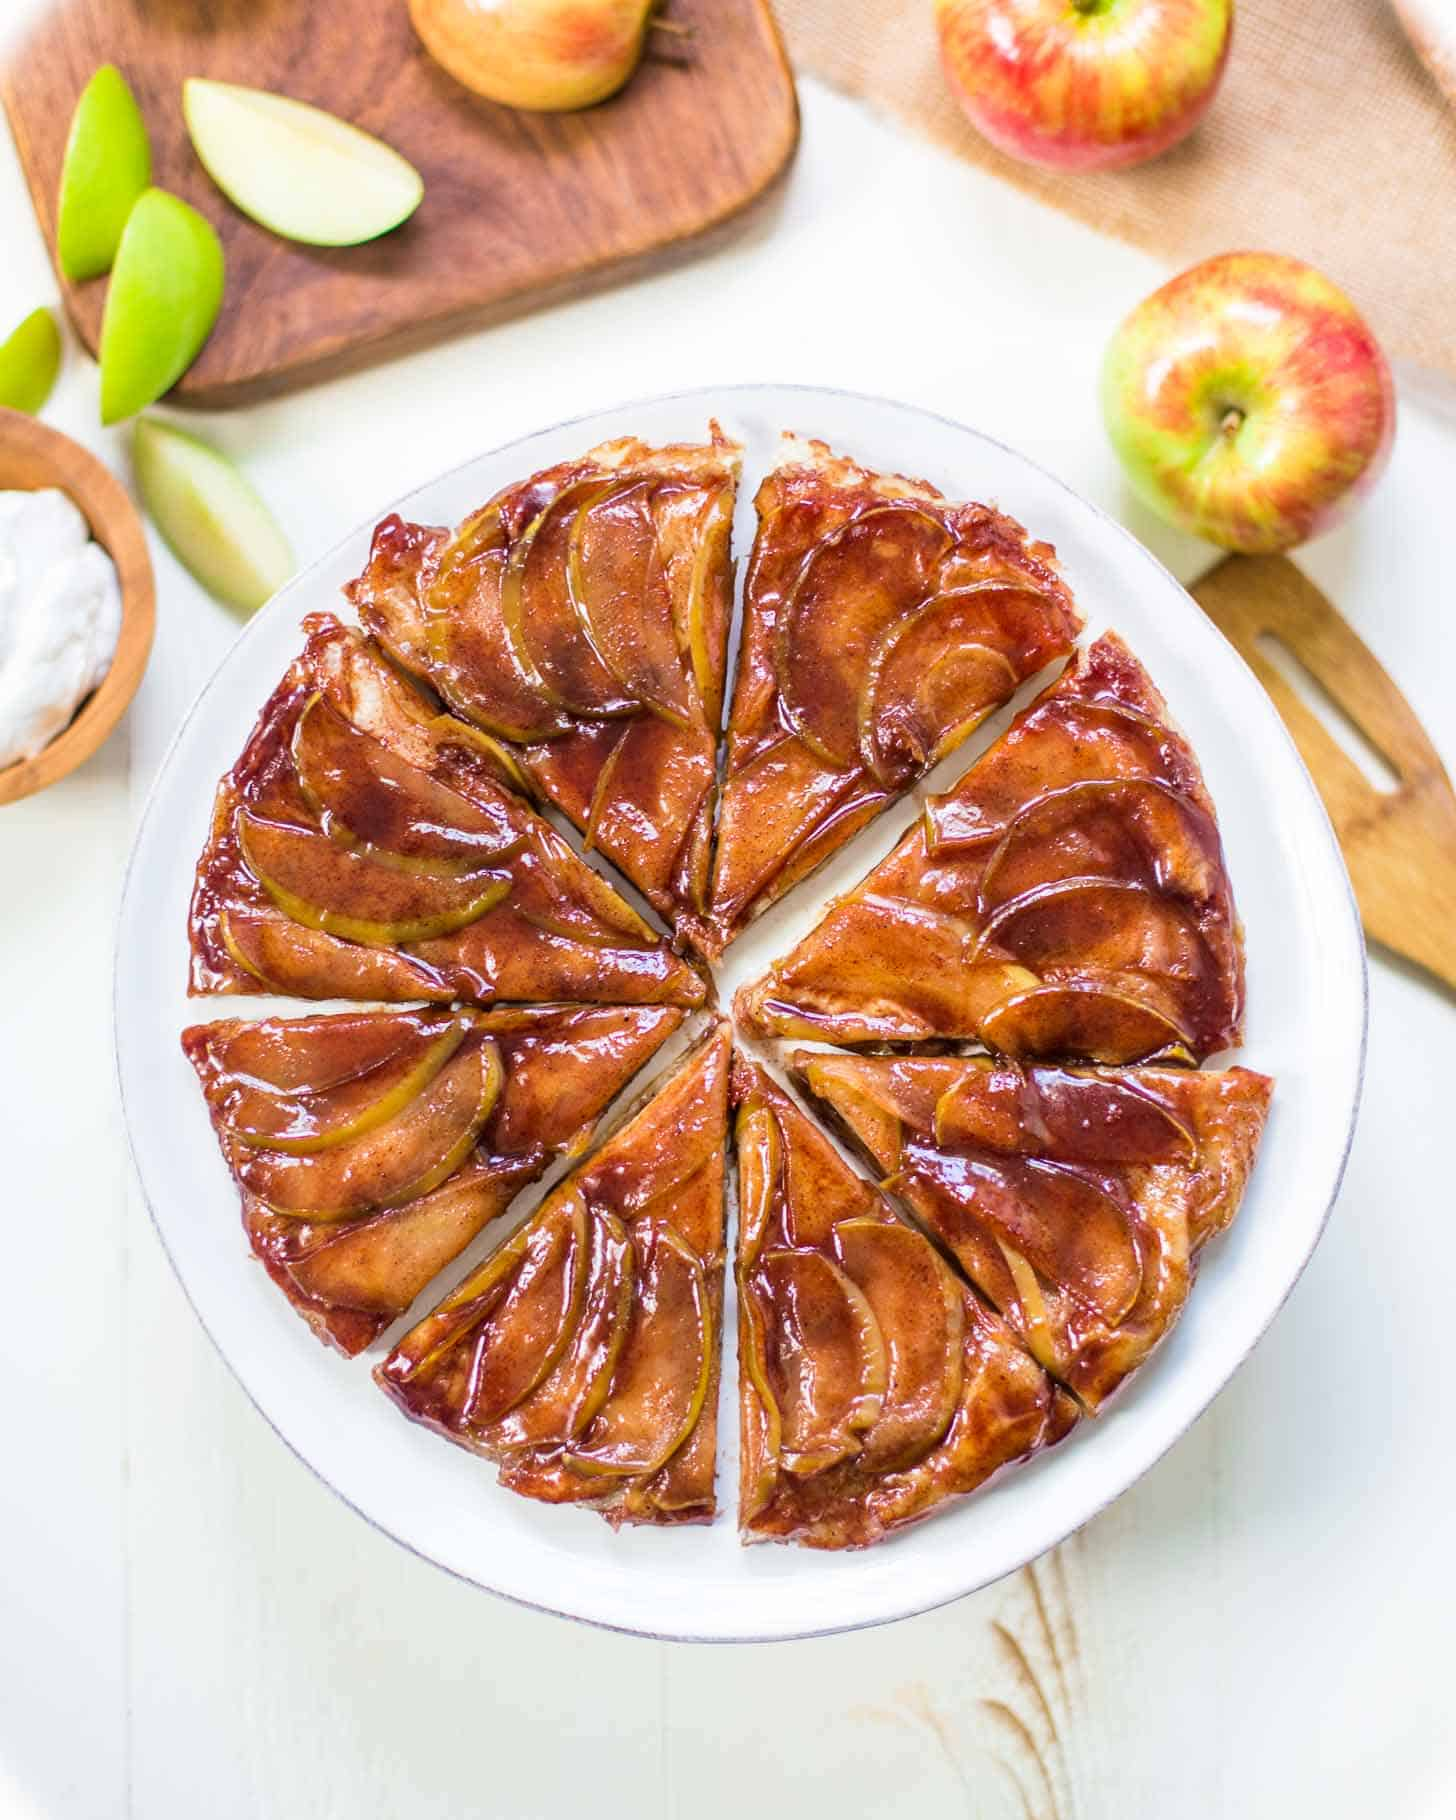 apple tart, cut into slices, on a white plate